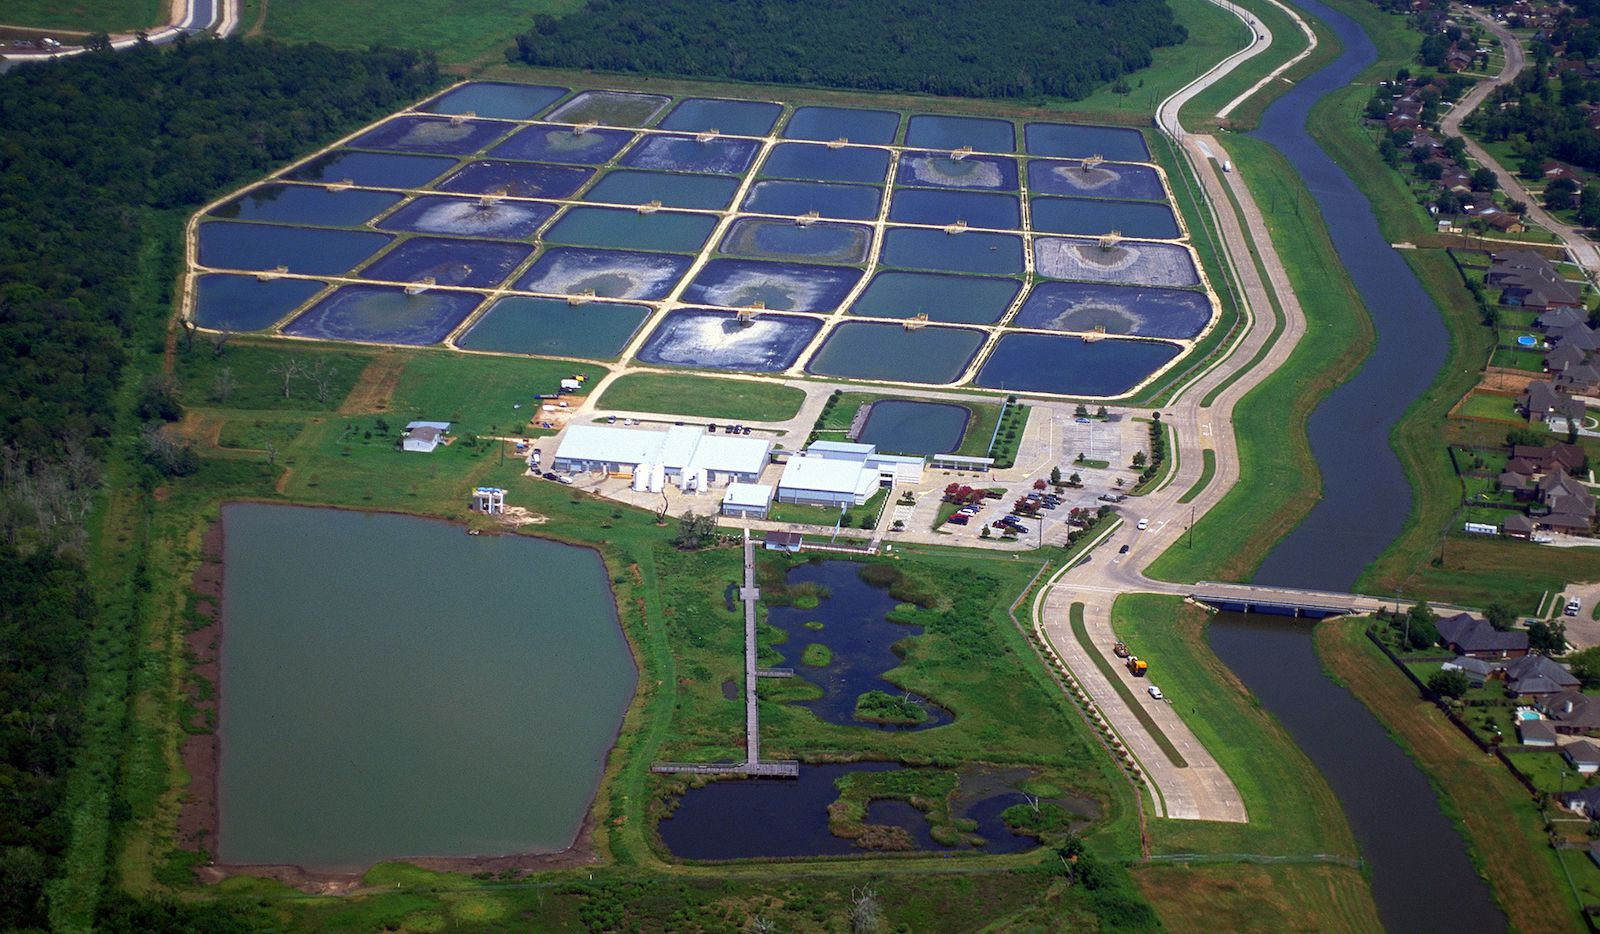 Sea Center Texas in Lake Jackson is one of three TPWD saltwater hatcheries where a combined total of around 20 million sport fish like red drum, spotted seatrout and Southern flounder are produced each year.